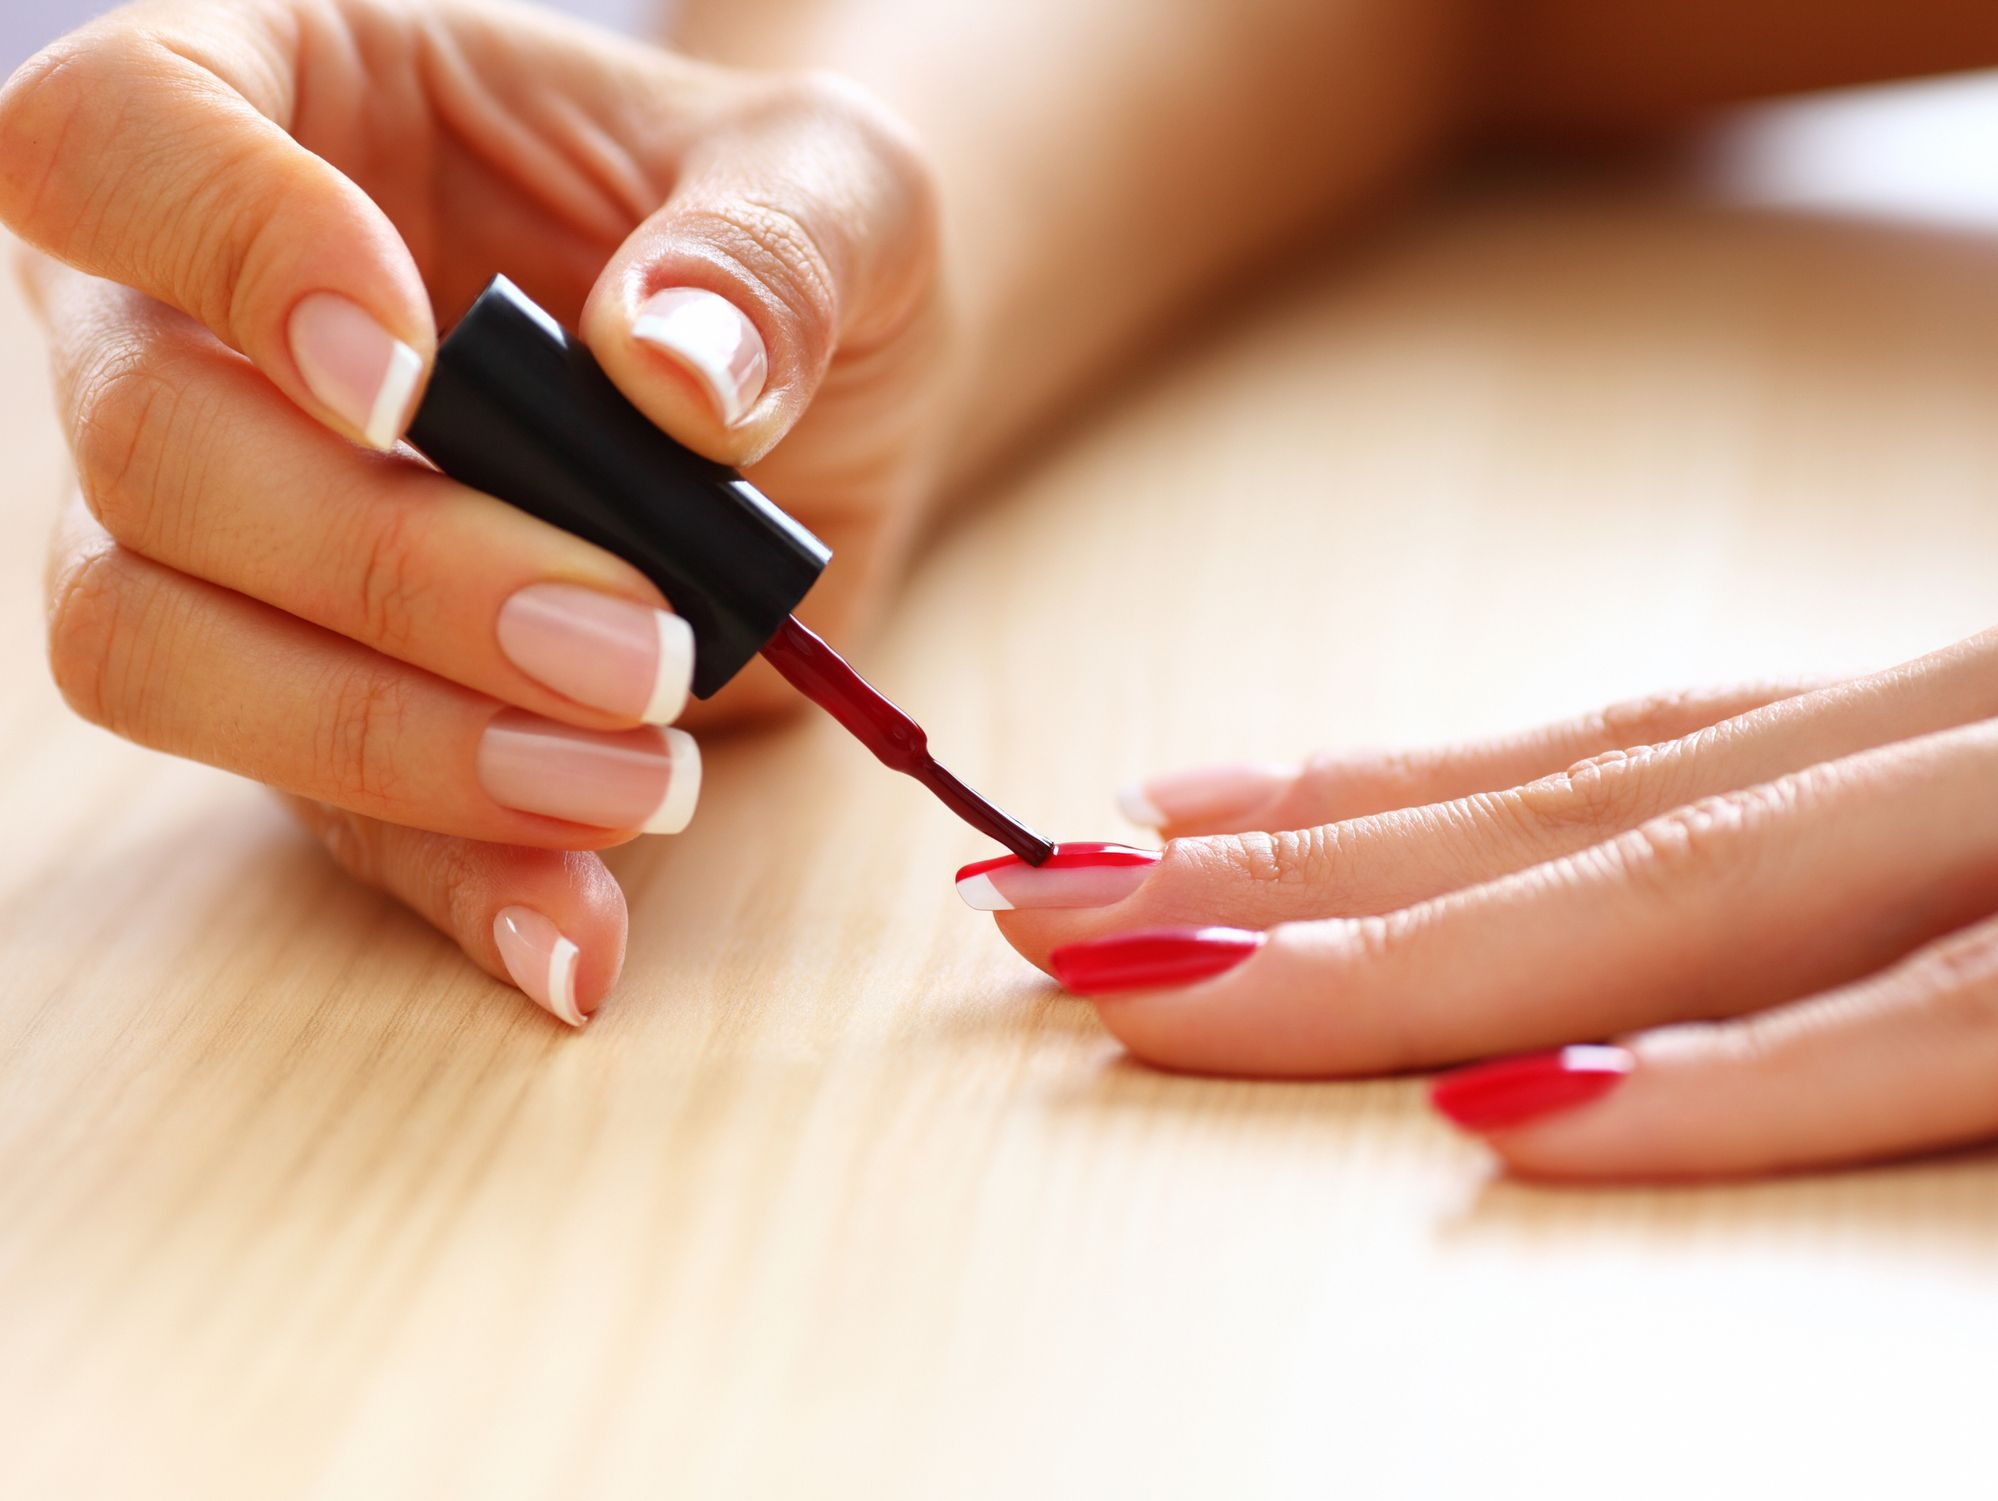 10 Best Non-Toxic Nail Polish Brands for a Natural, Healthy Manicure